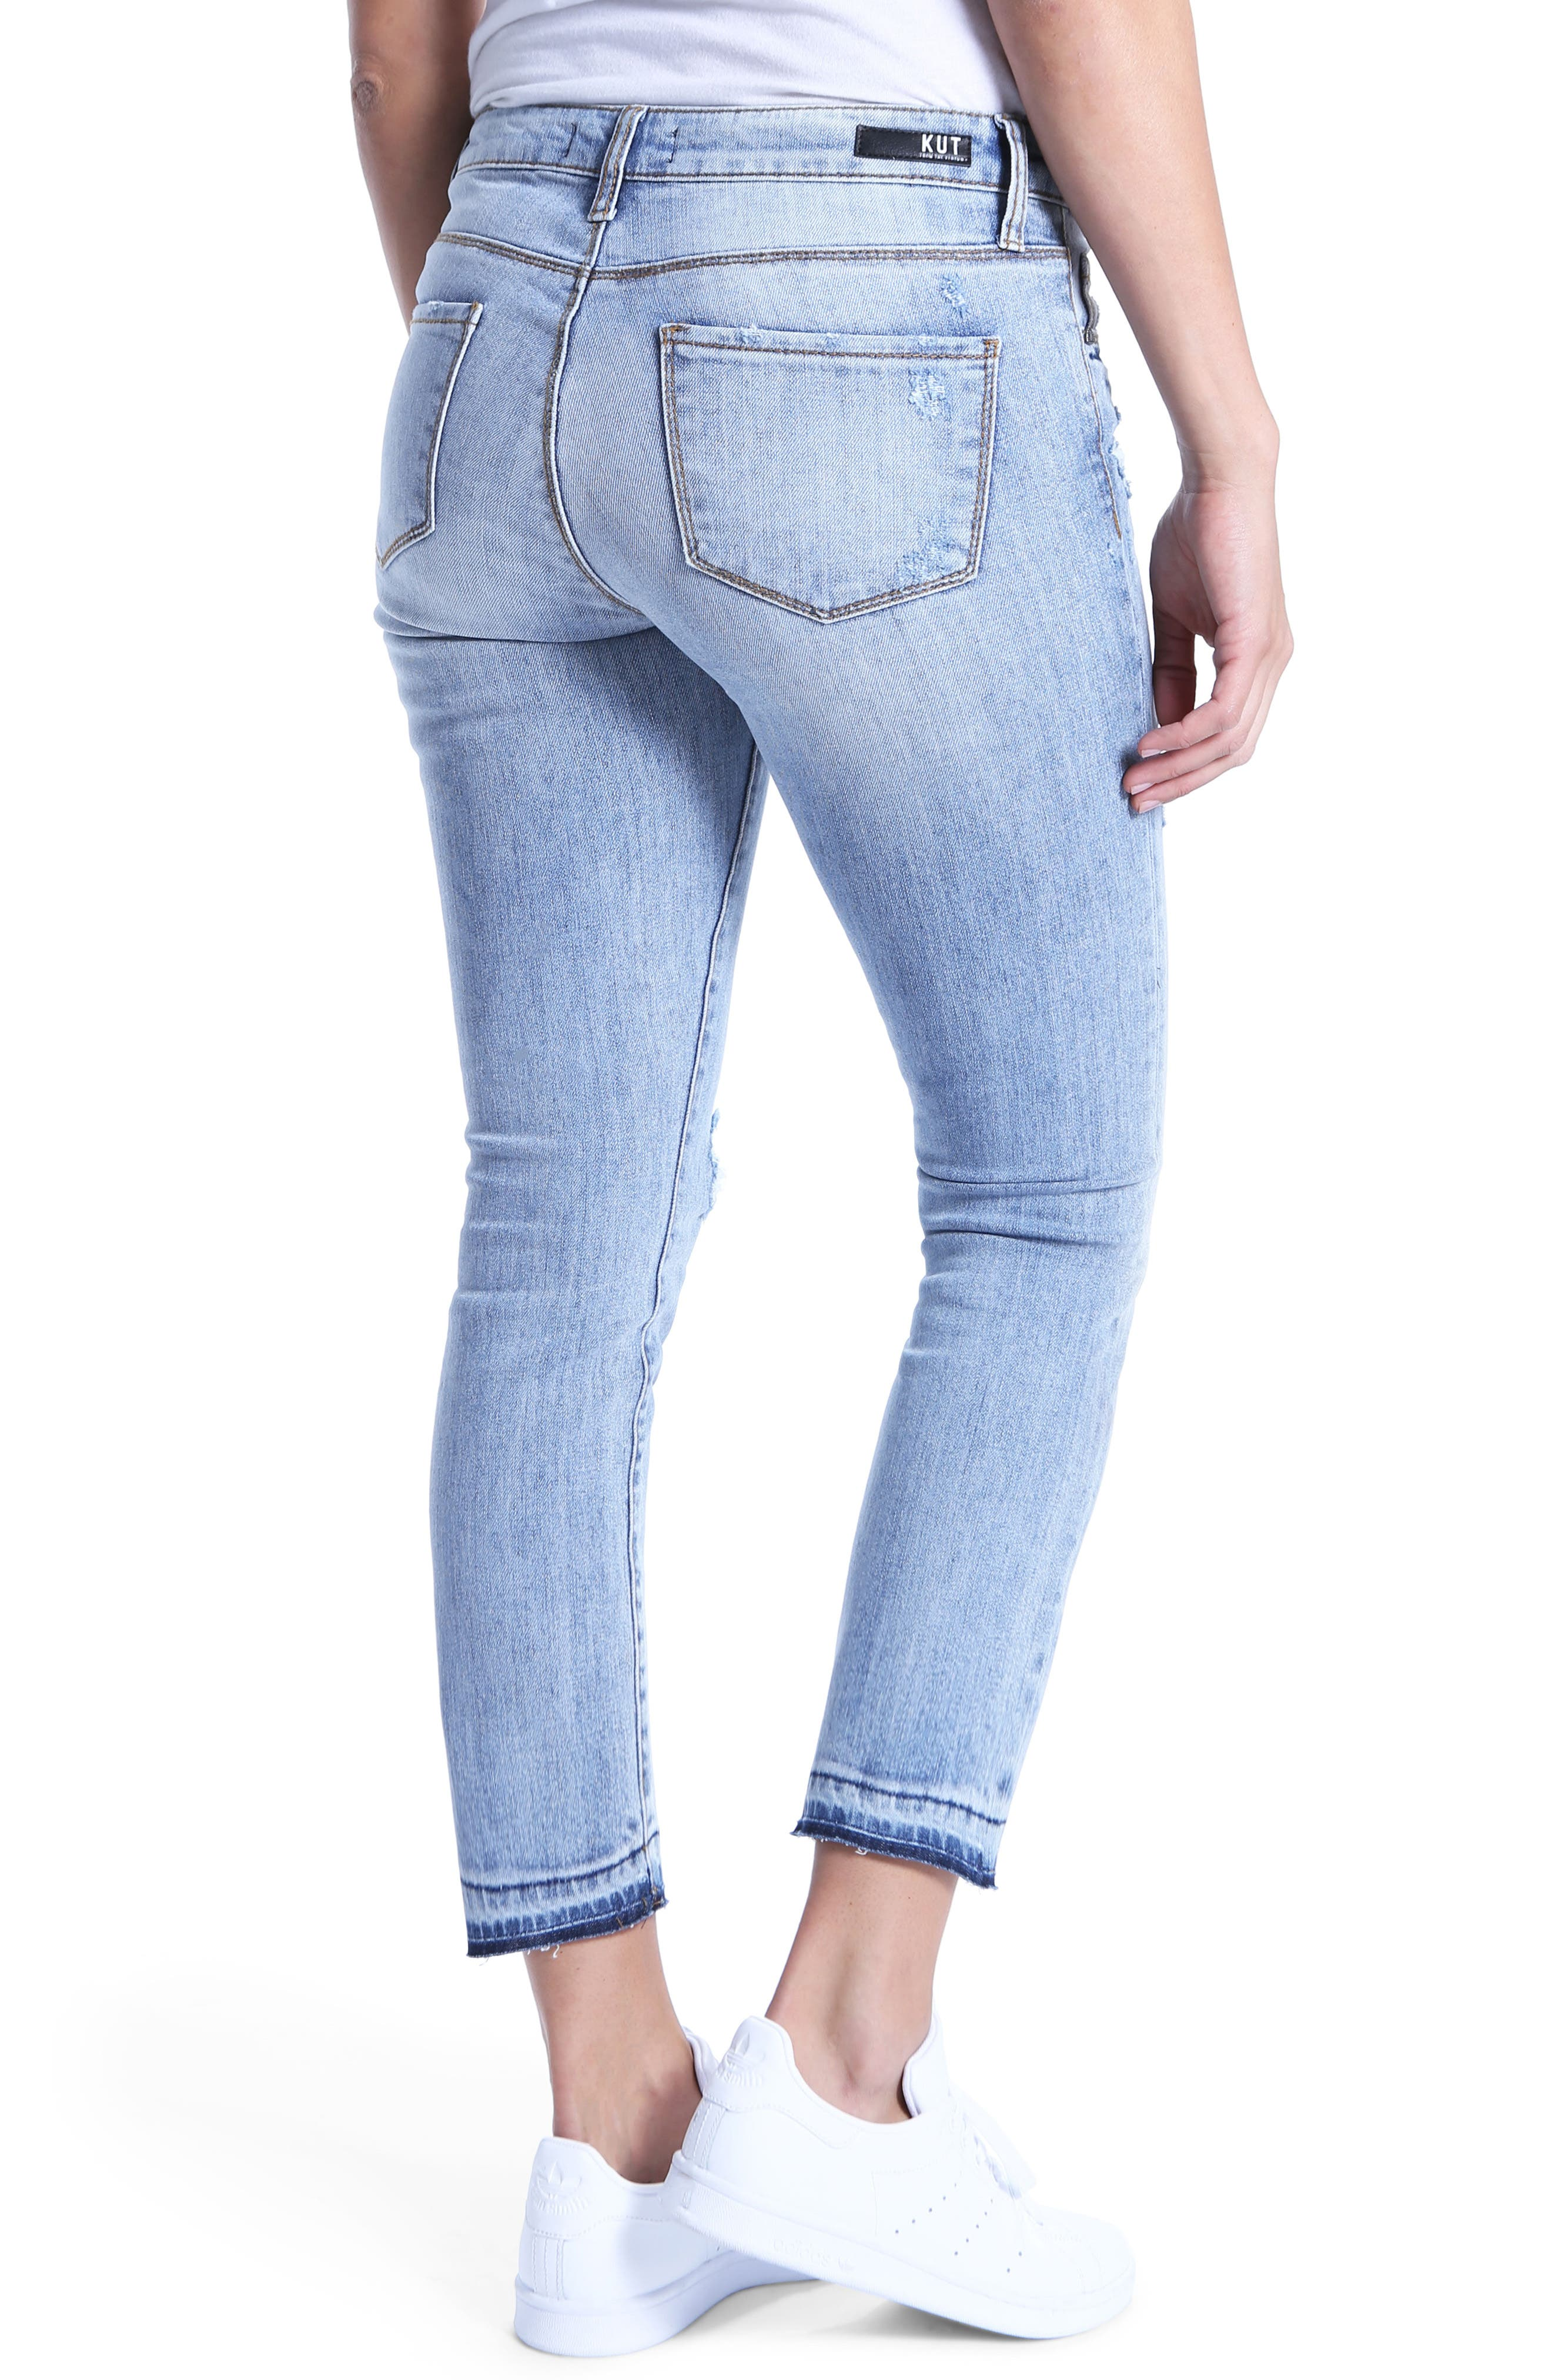 Reese Ripped Ankle Jeans,                             Alternate thumbnail 2, color,                             431